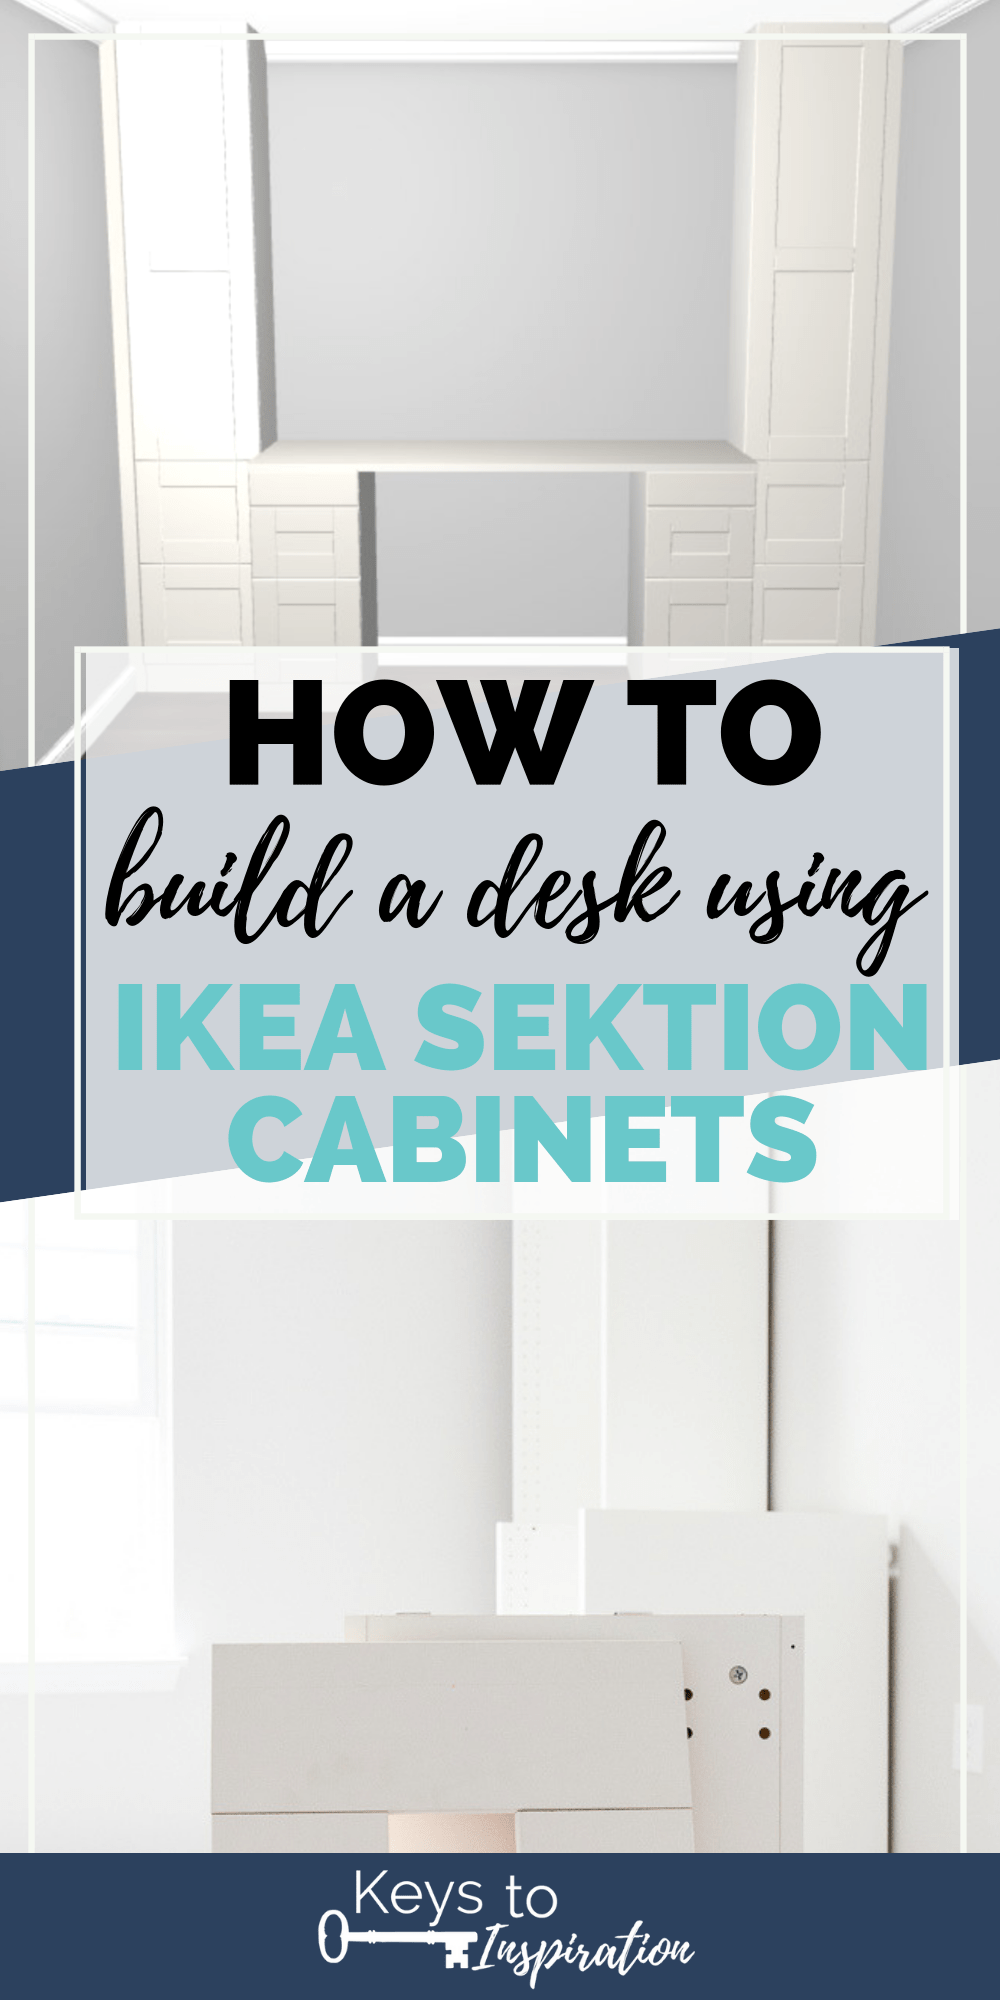 How To Build A Desk Using Ikea Sektion Cabinets One Room Challenge Week 2 Christene Holder Ikea Built In Ikea Sektion Cabinets Built In Desk